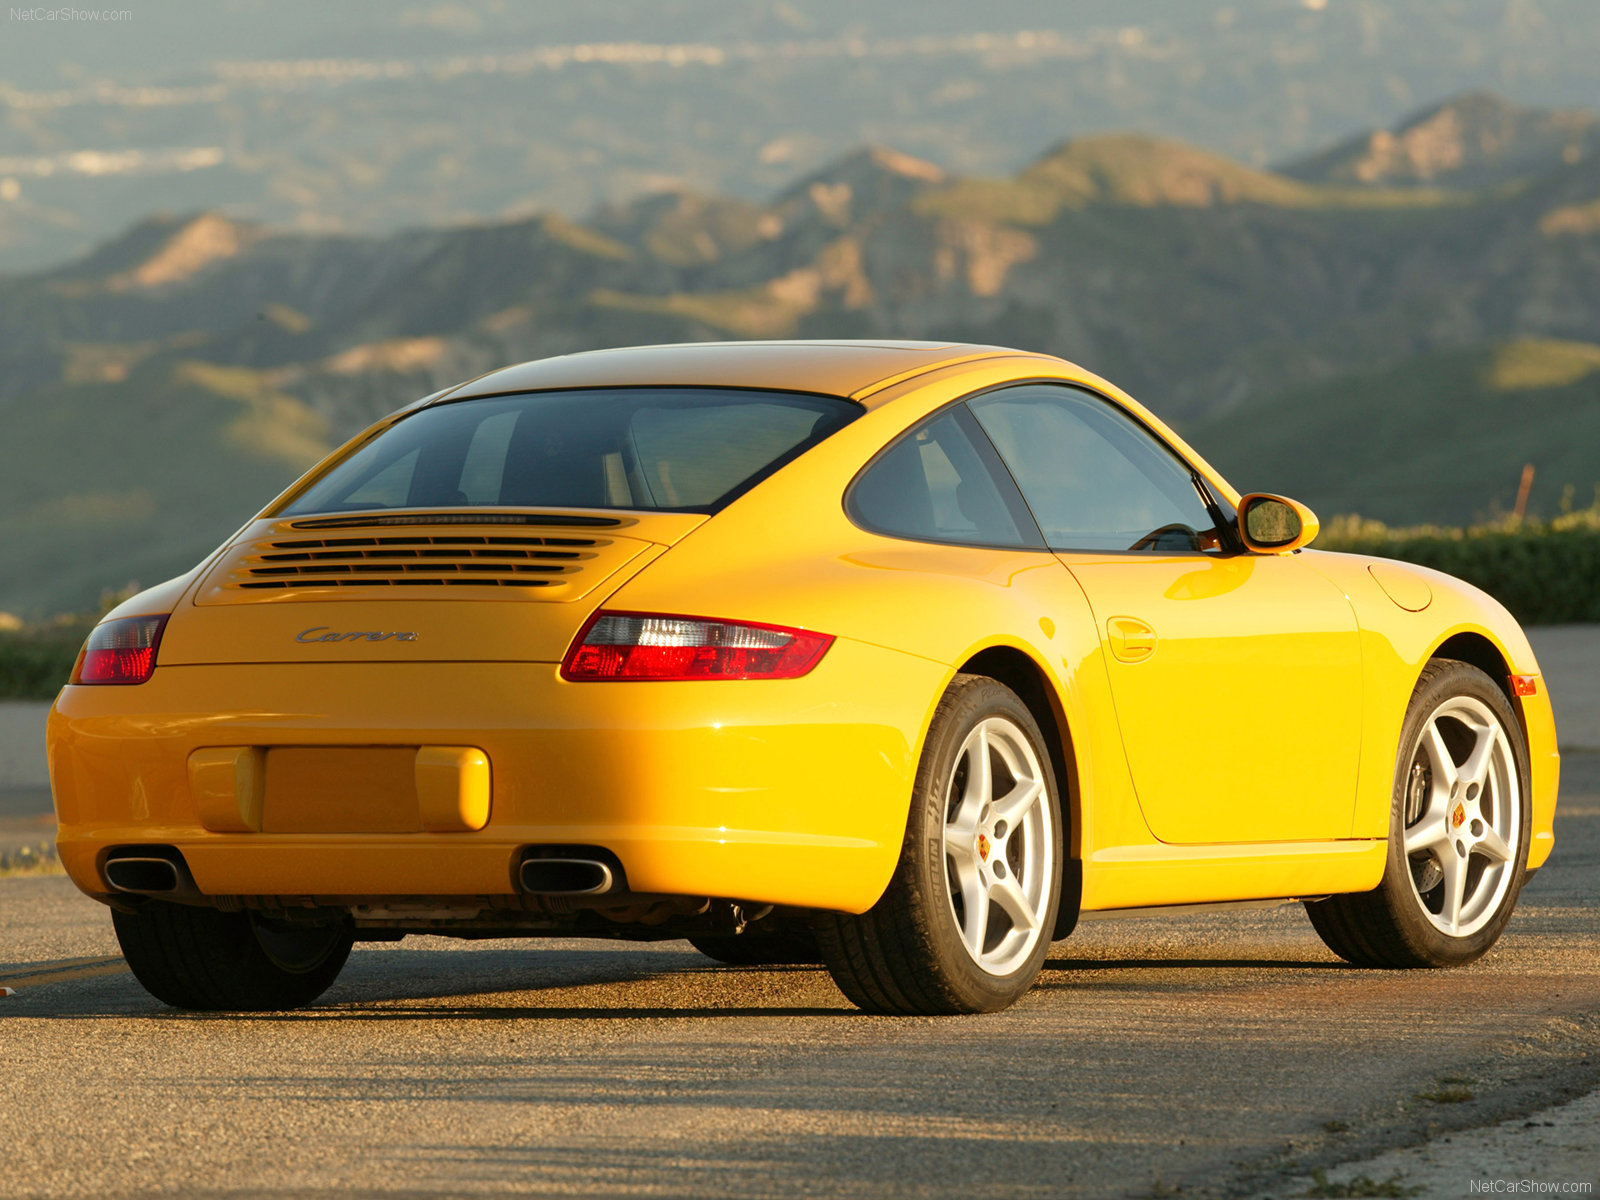 2006 Yellow Porsche 911 Carrera Coupe Wallpapers